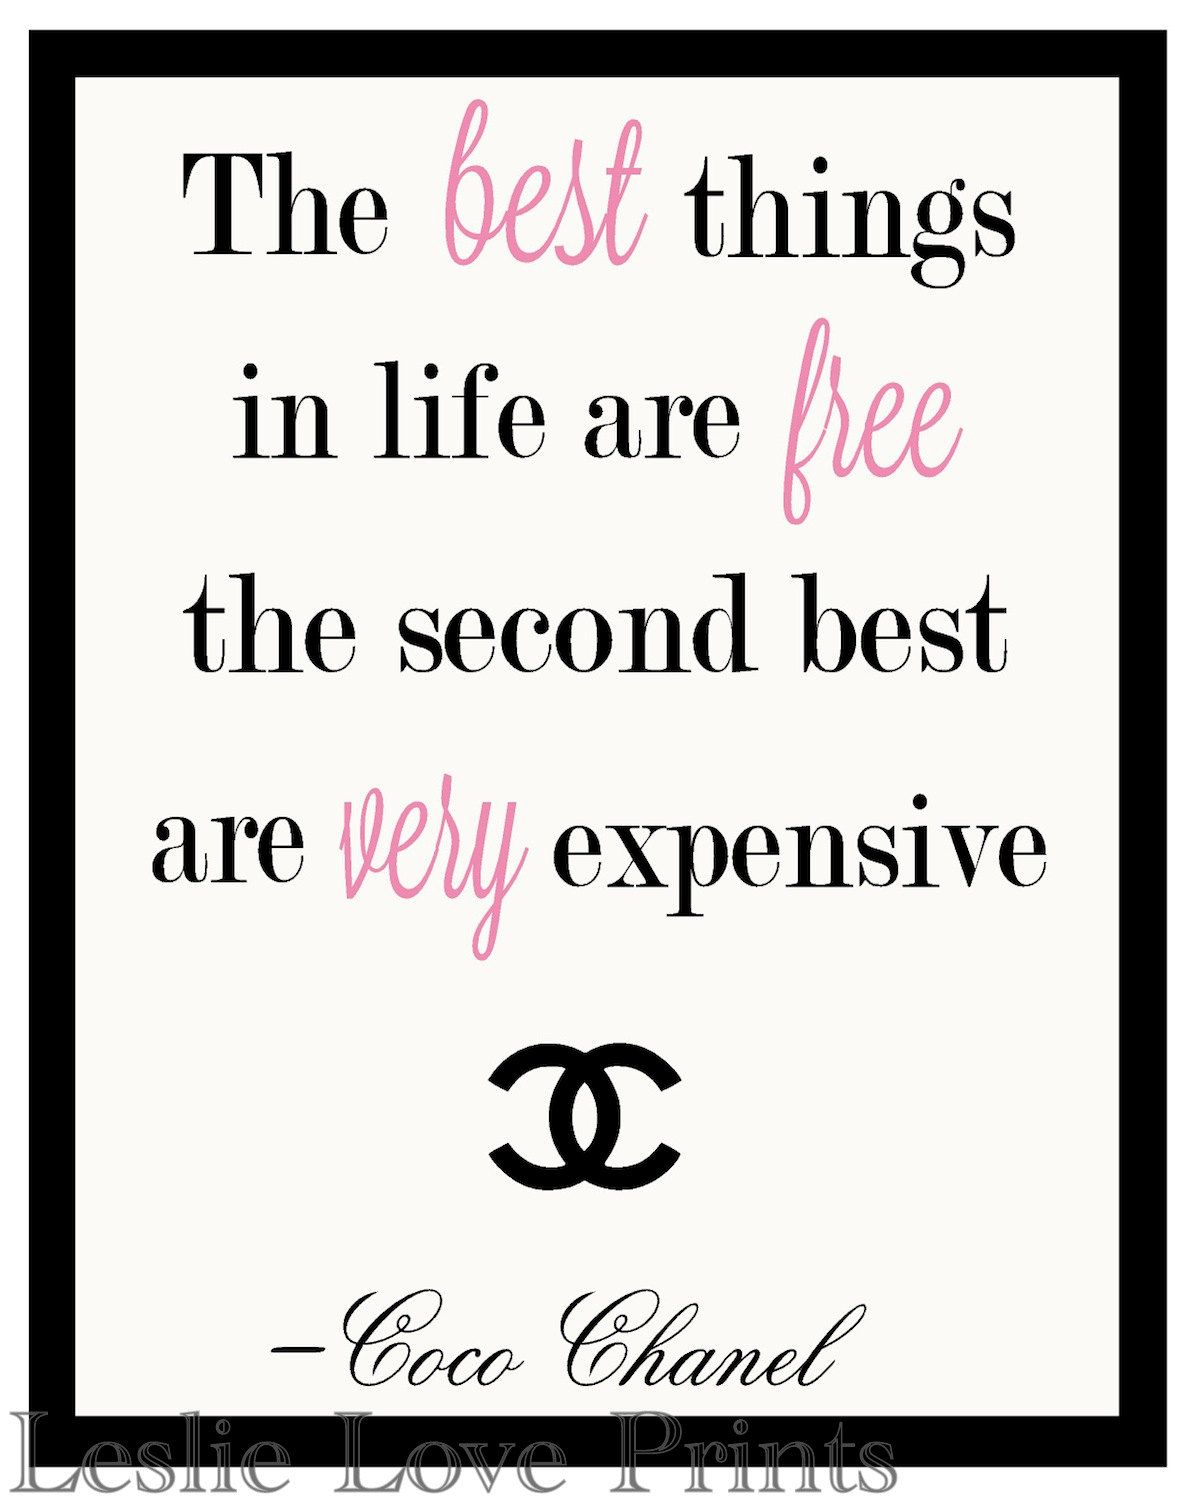 67 Famous Fashion Quotes to Ignite & Inspire You | Chanel